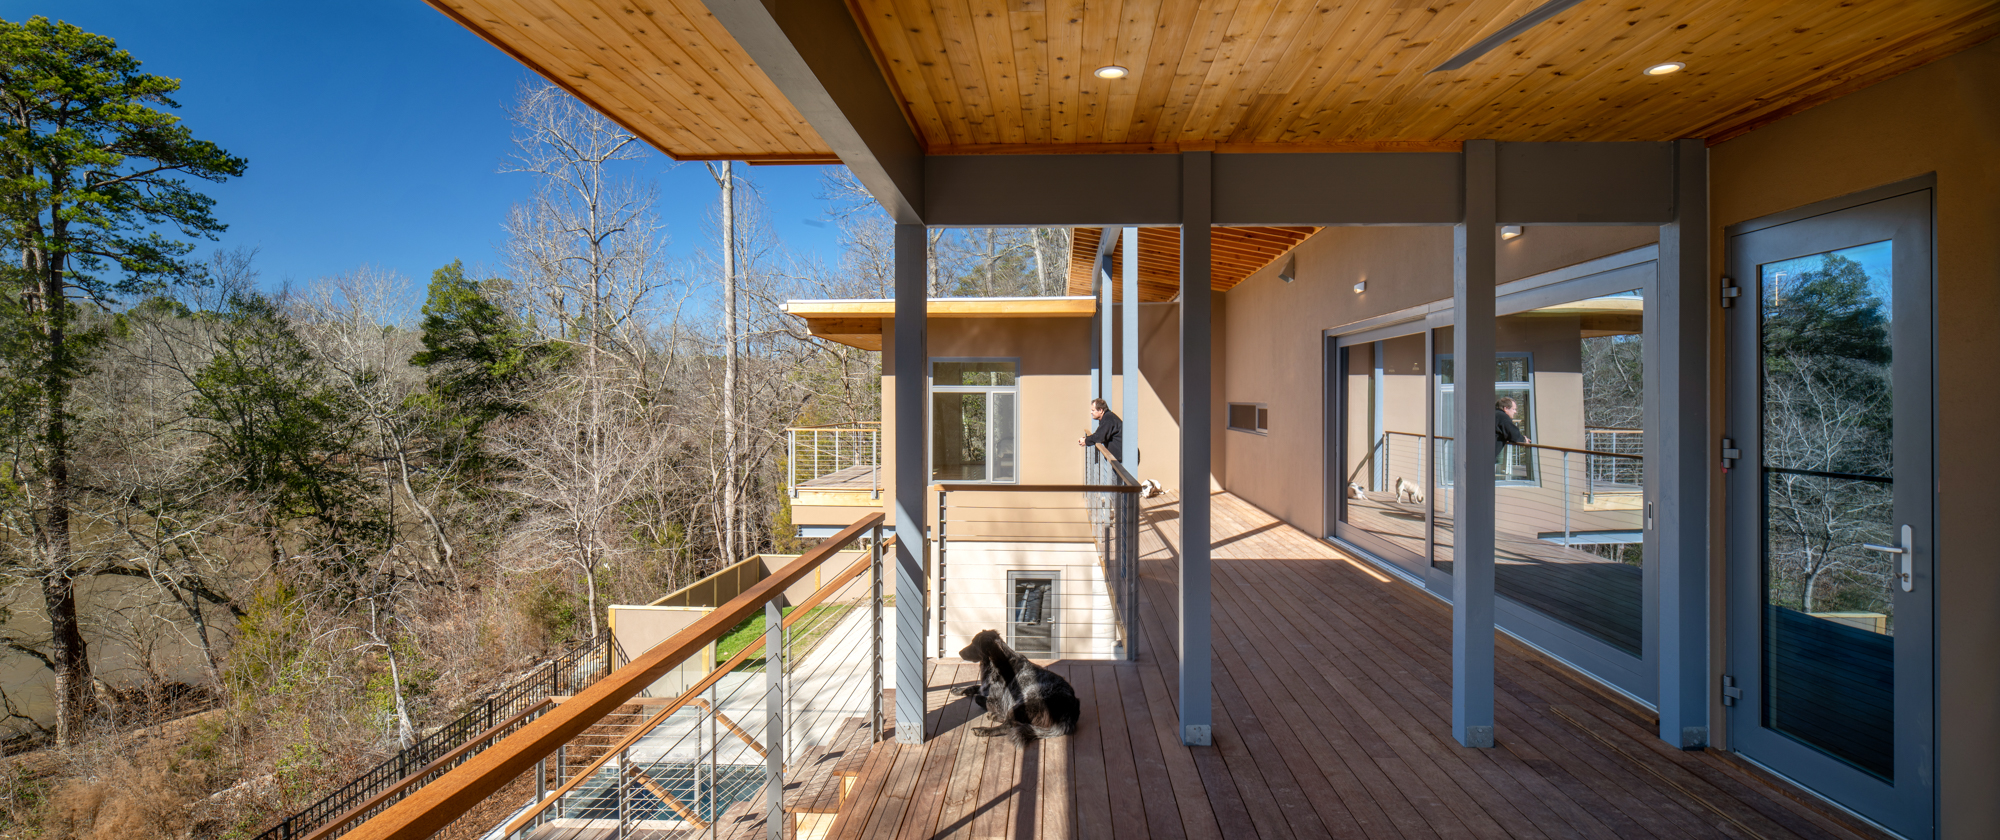 Haw River House Deep Sheltering Porches